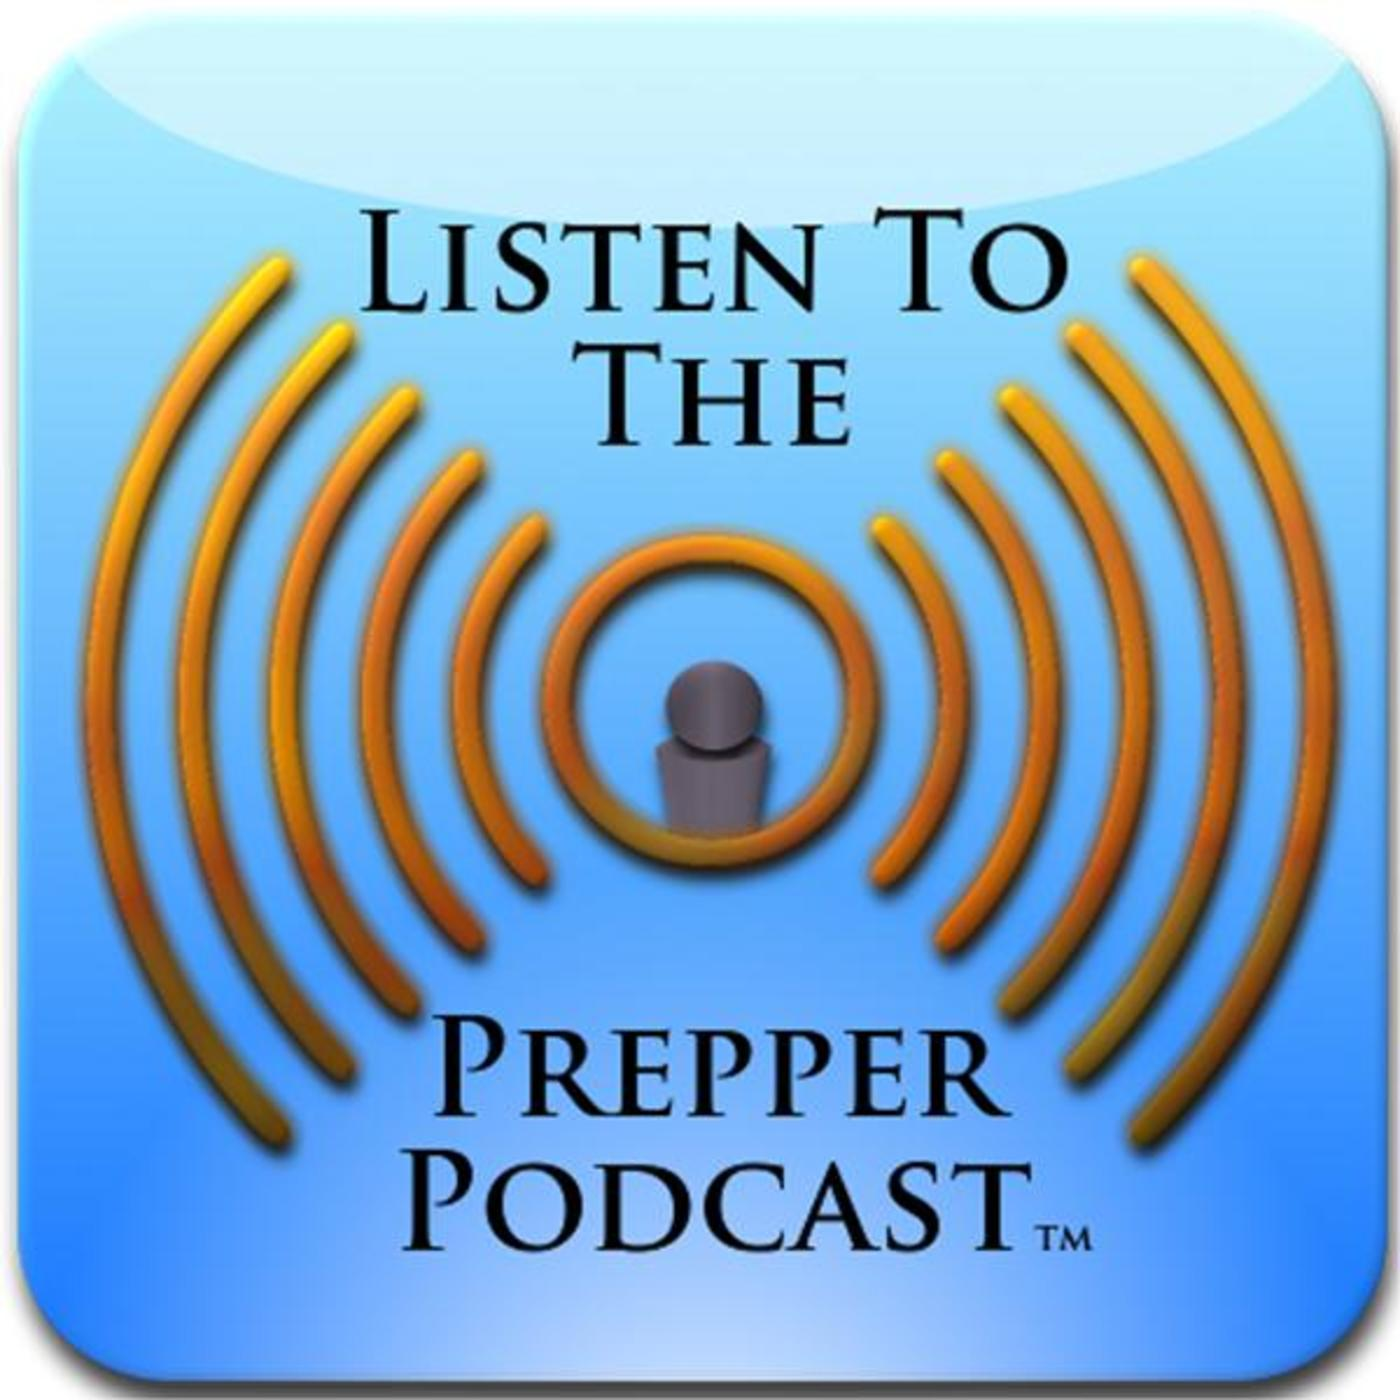 Preppers Podcast Radio Network (KPRN-DB)